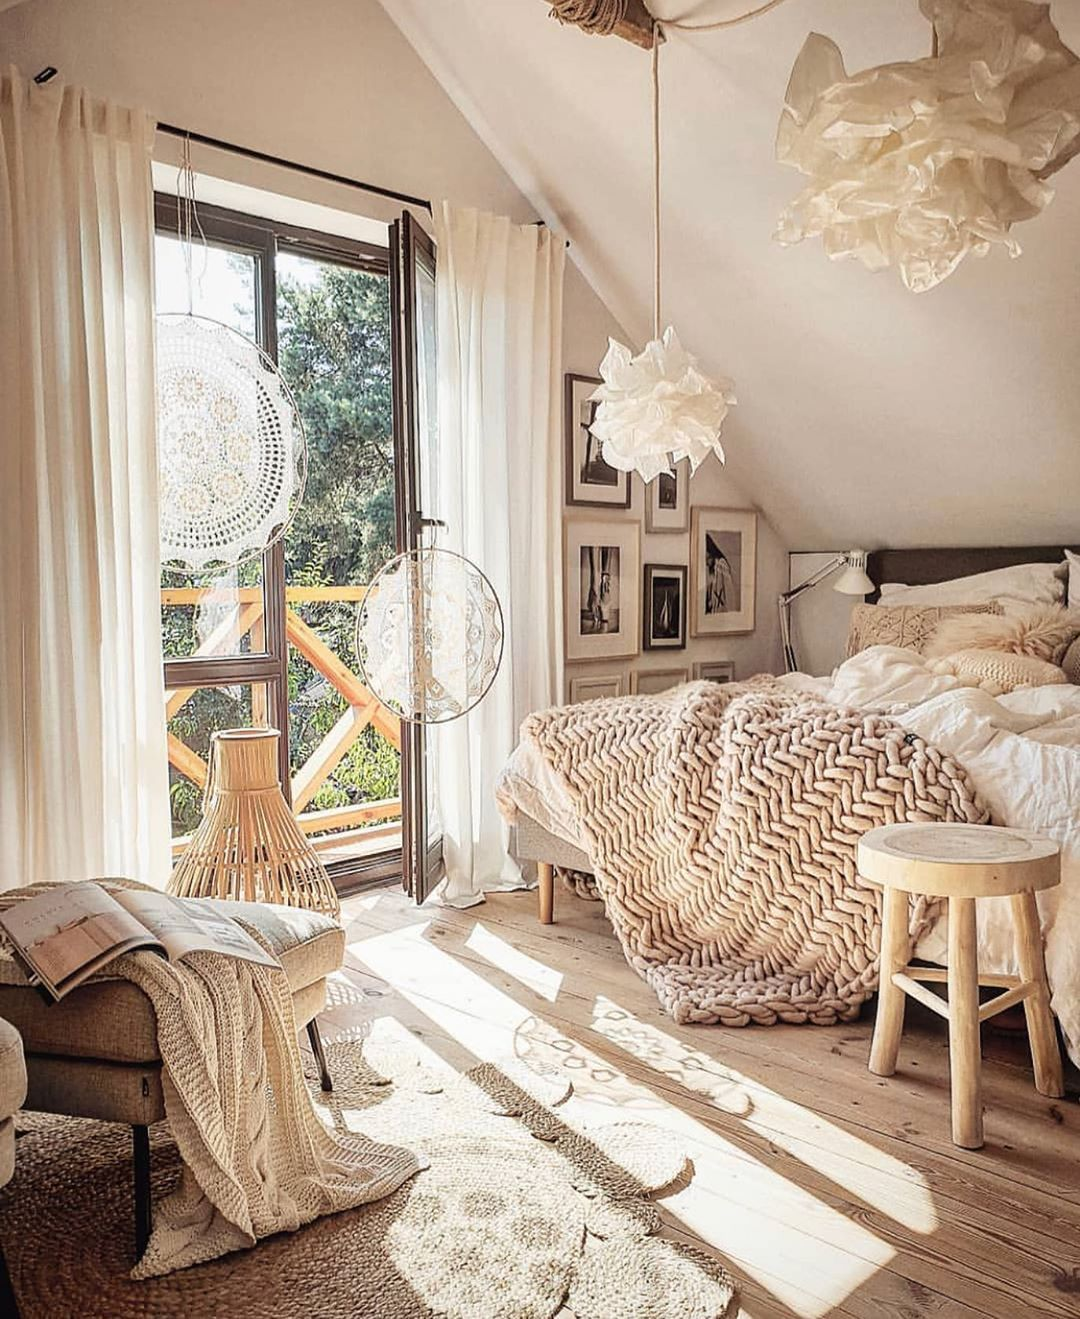 31 Ideas to Decor your Bedroom in 2020 Winters you can Copy – ARTERESTING Bazaar